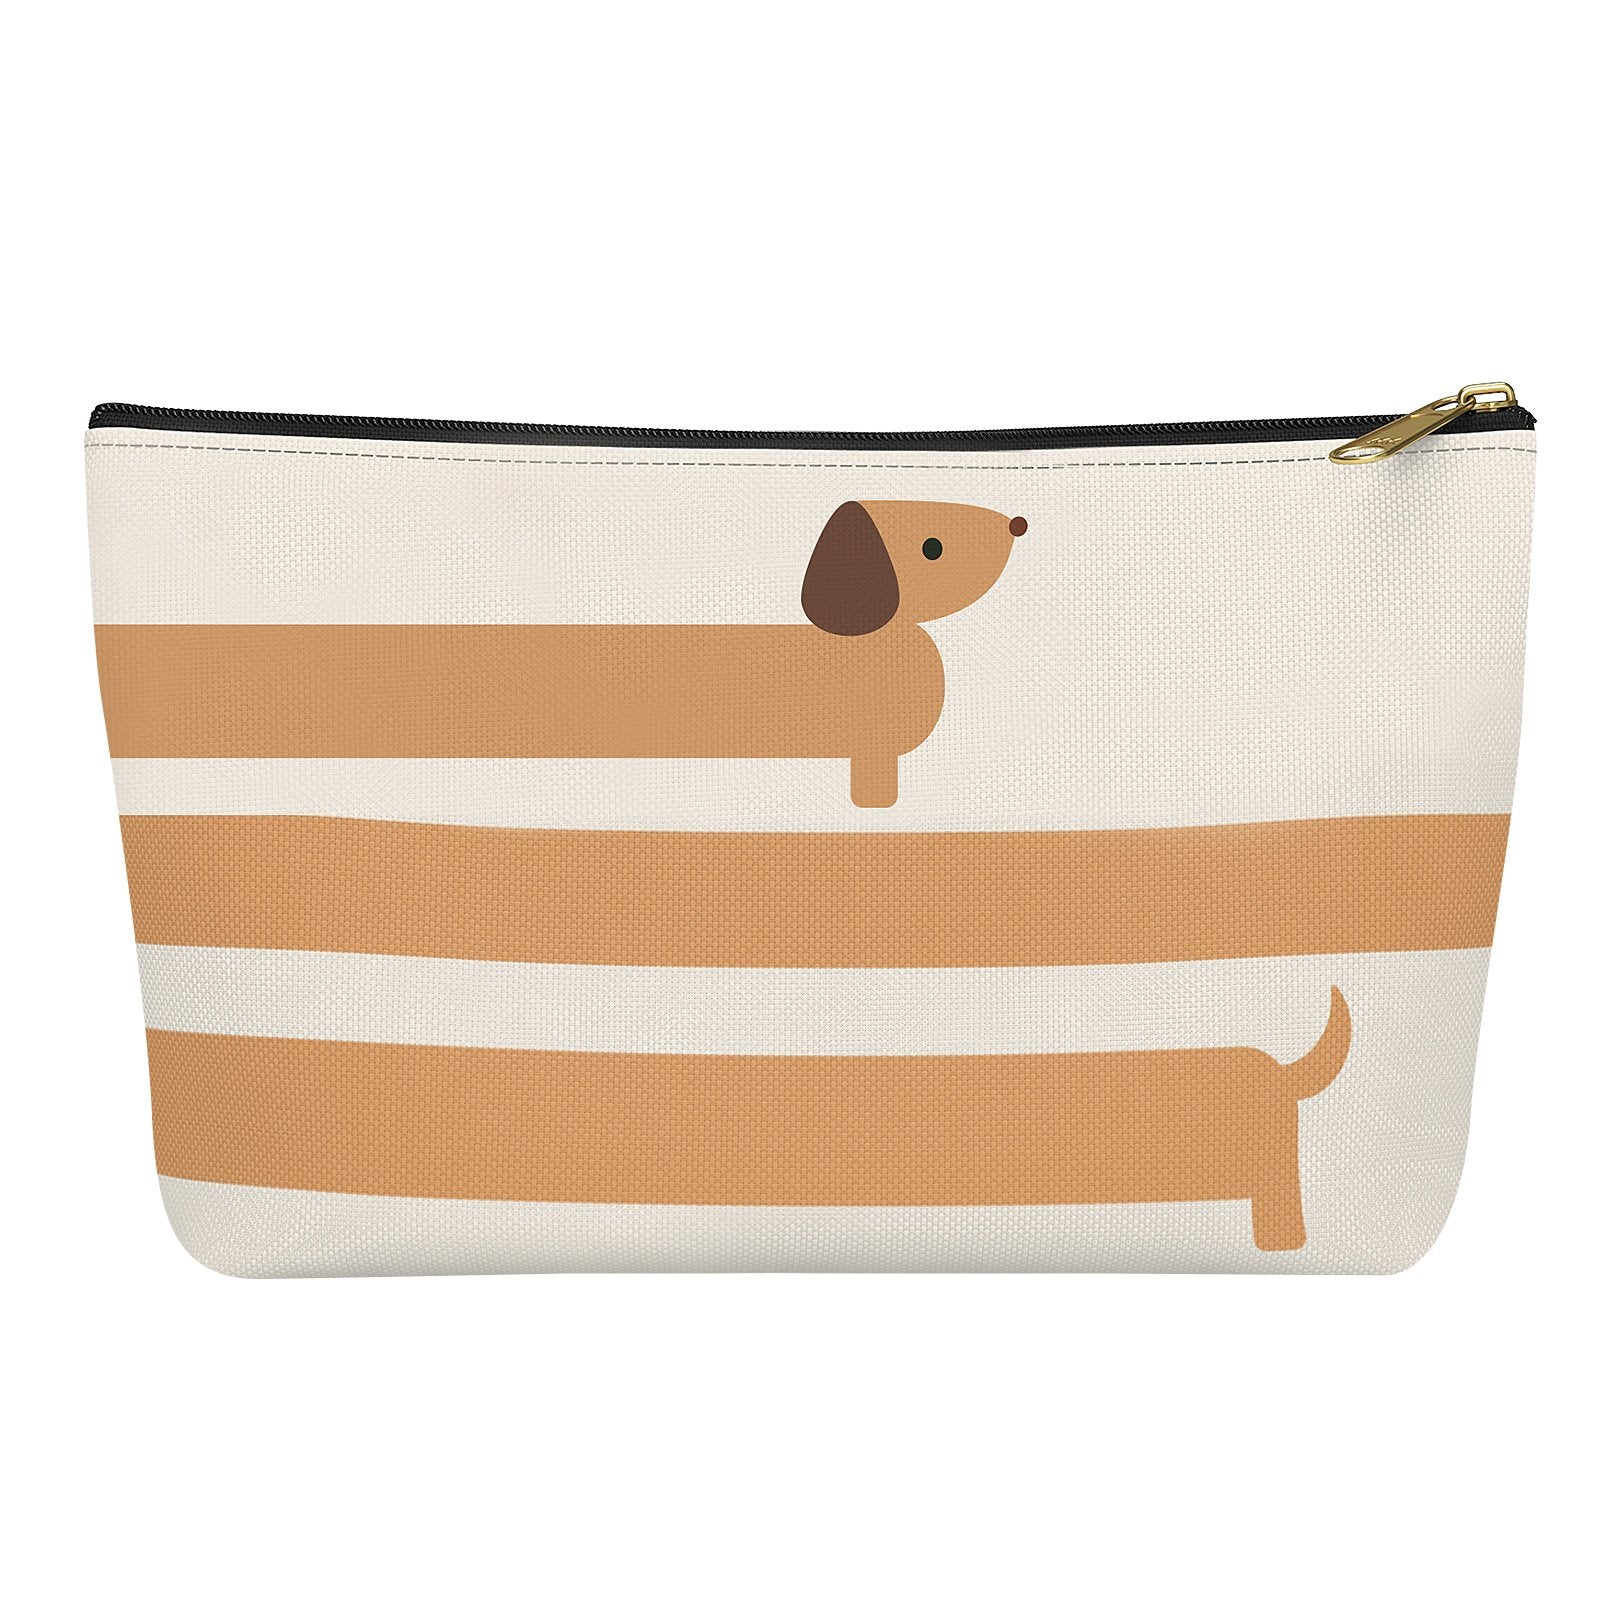 Darby Tan Pouch